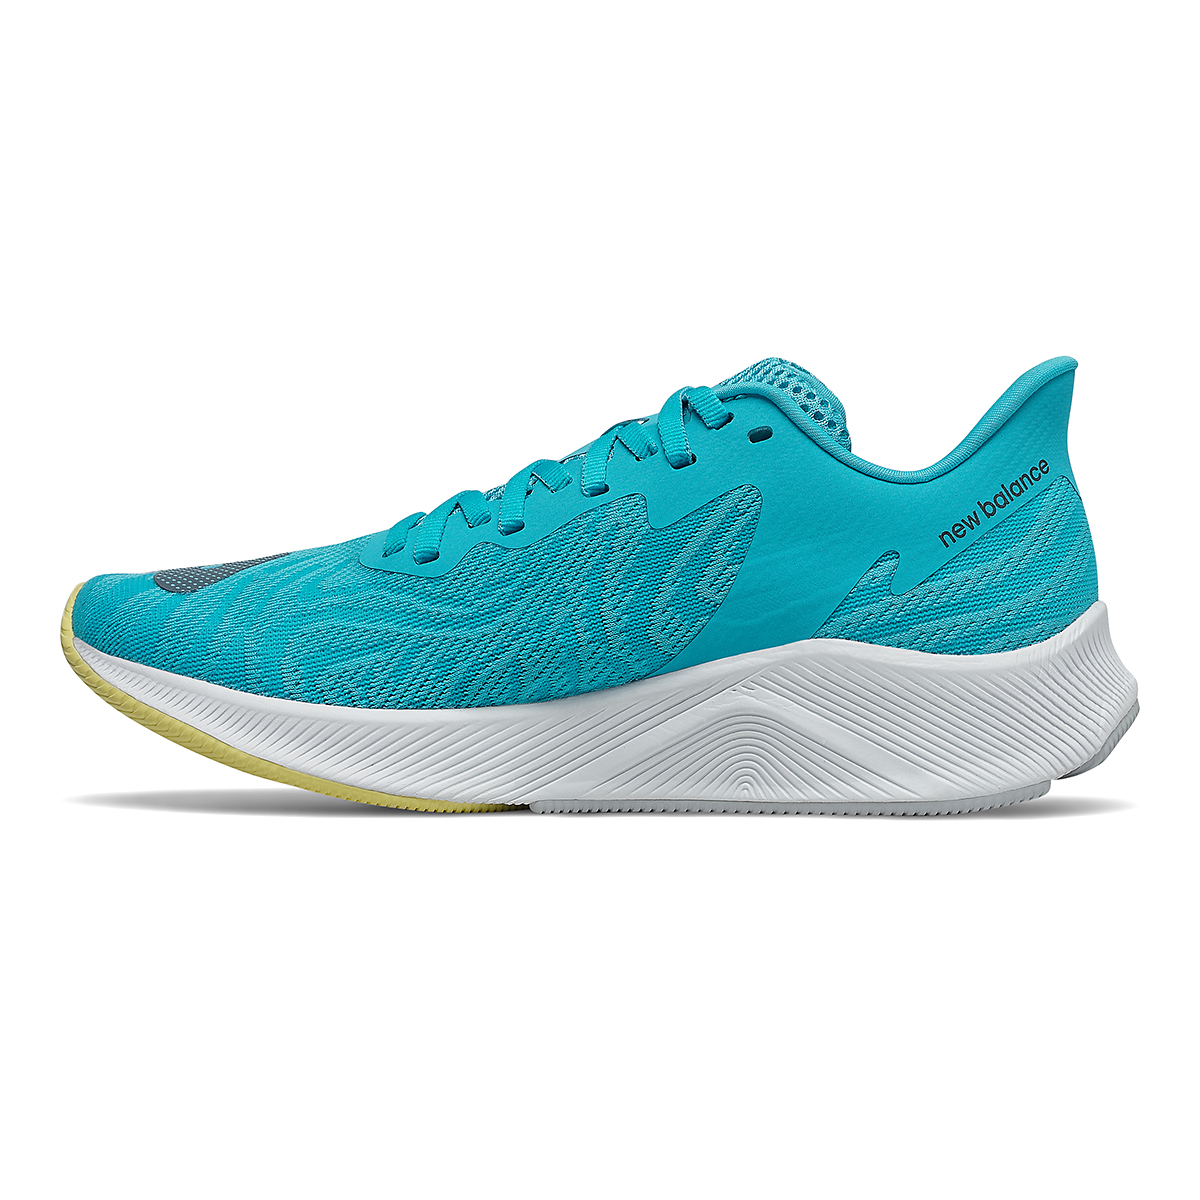 Women's New Balance Fuelcell Prism Running Shoe - Color: Virtual Sky/First Light - Size: 5 - Width: Regular, Virtual Sky/First Light, large, image 2